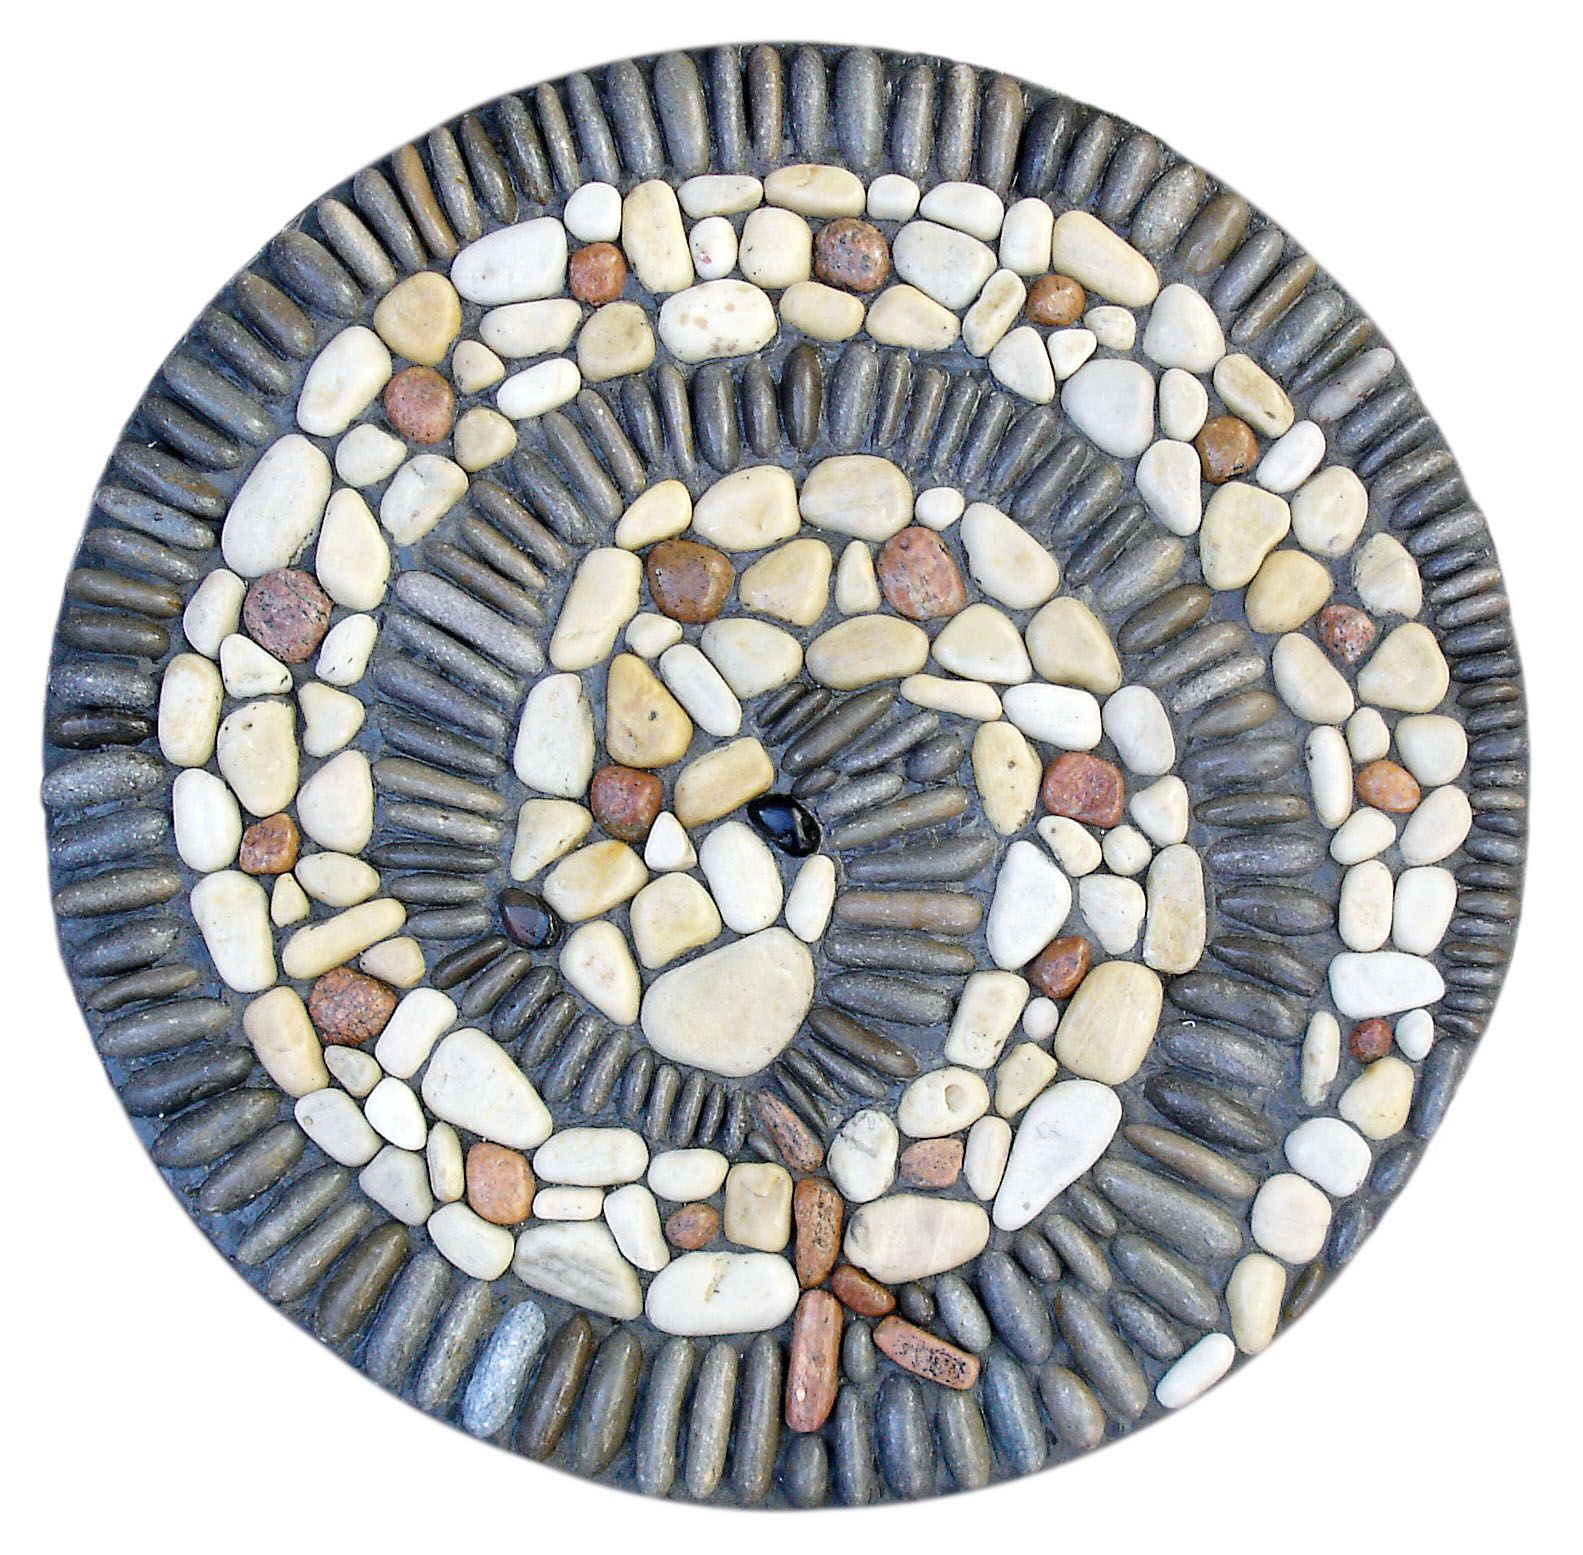 kathleen doody design garden pebble mosaics and pathways